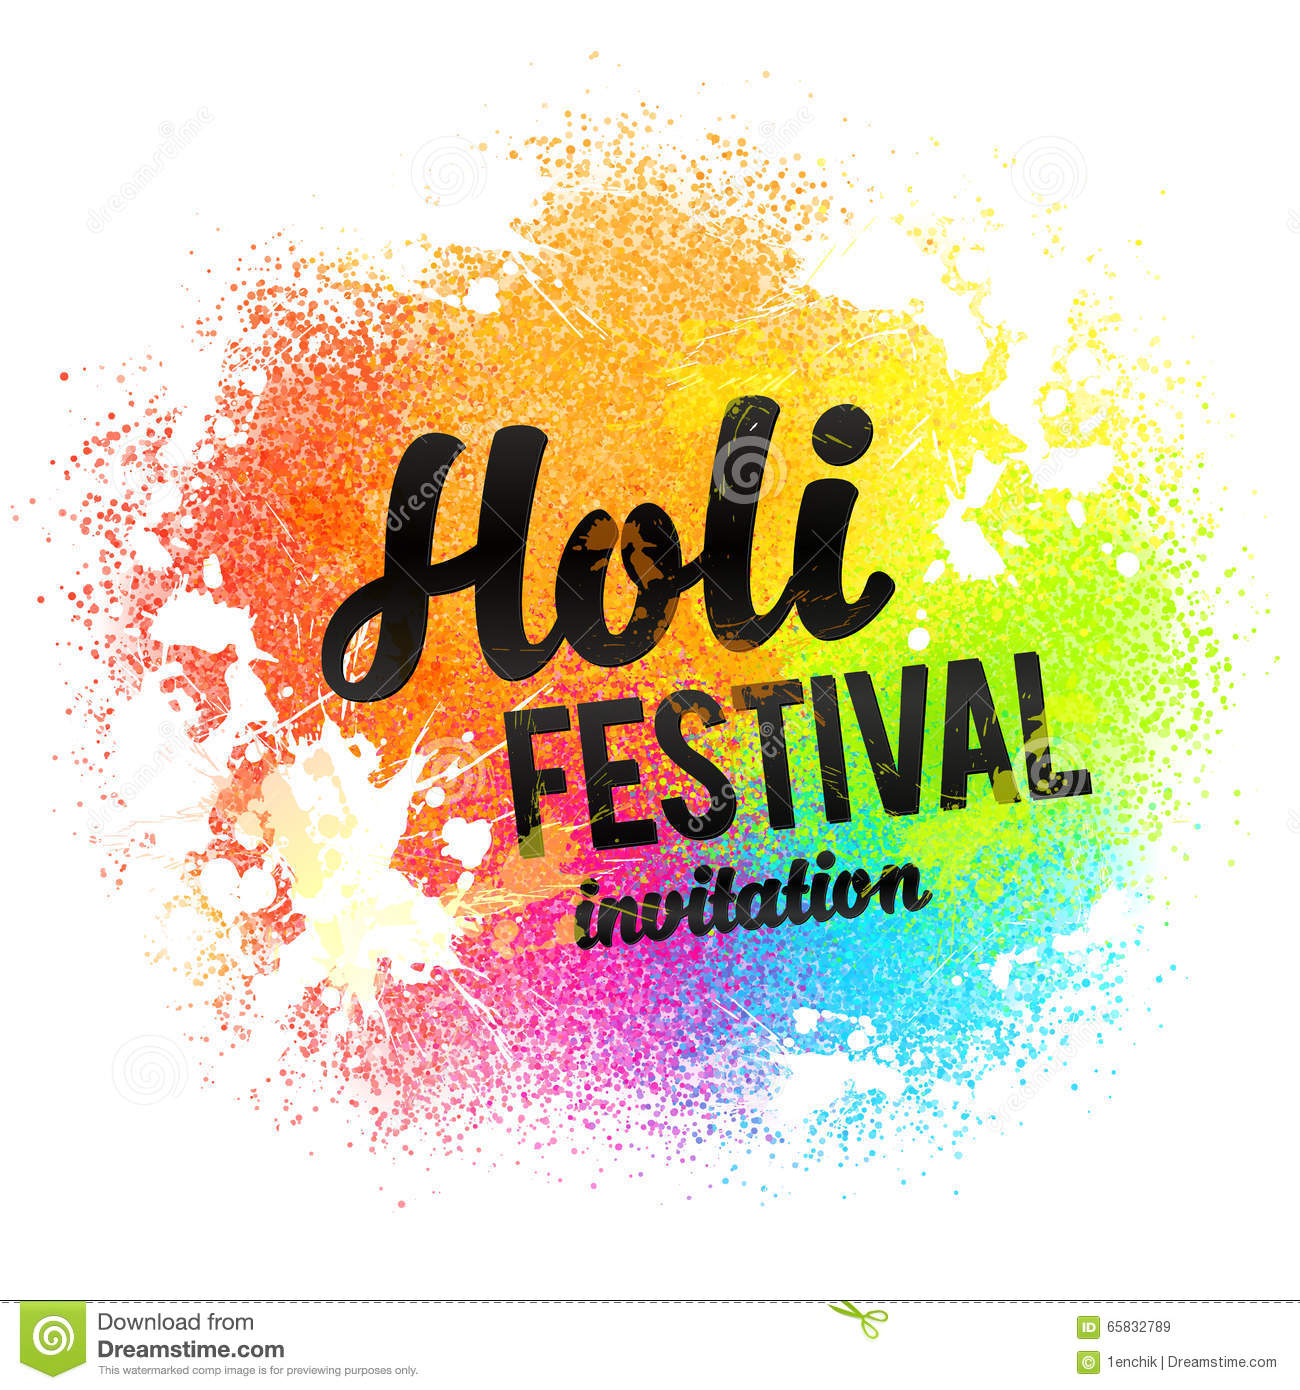 Holi festival invitation black sign on rainbow colors paint powder and drops background